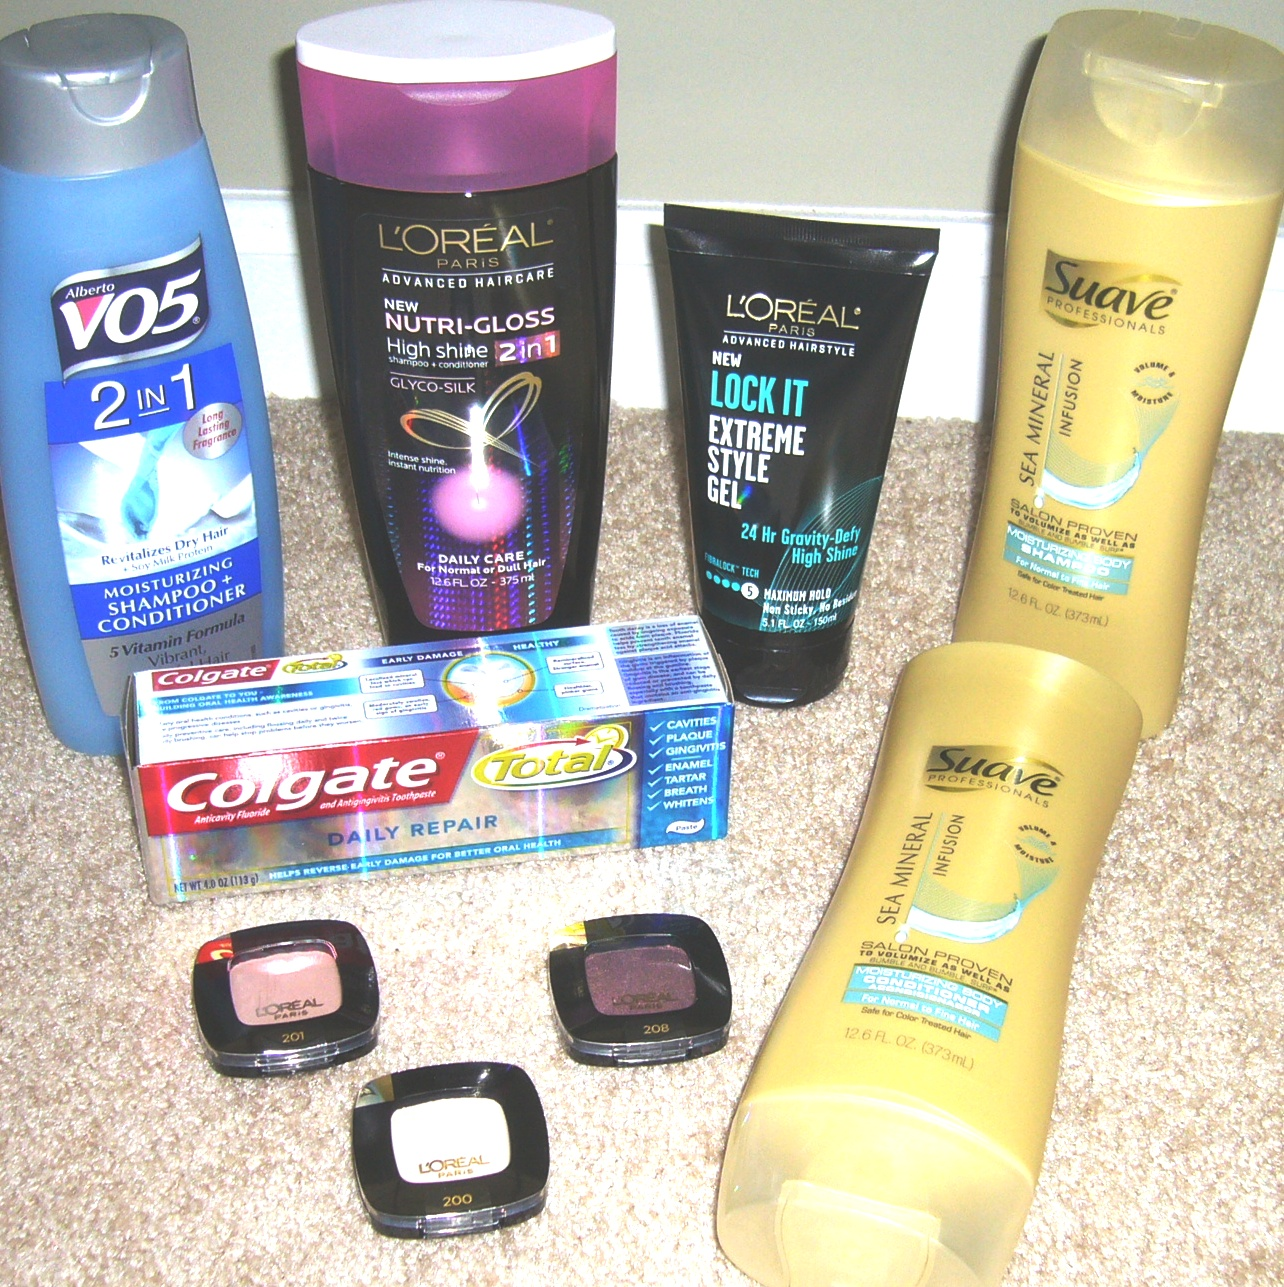 My Latest CVS Shopping Trip